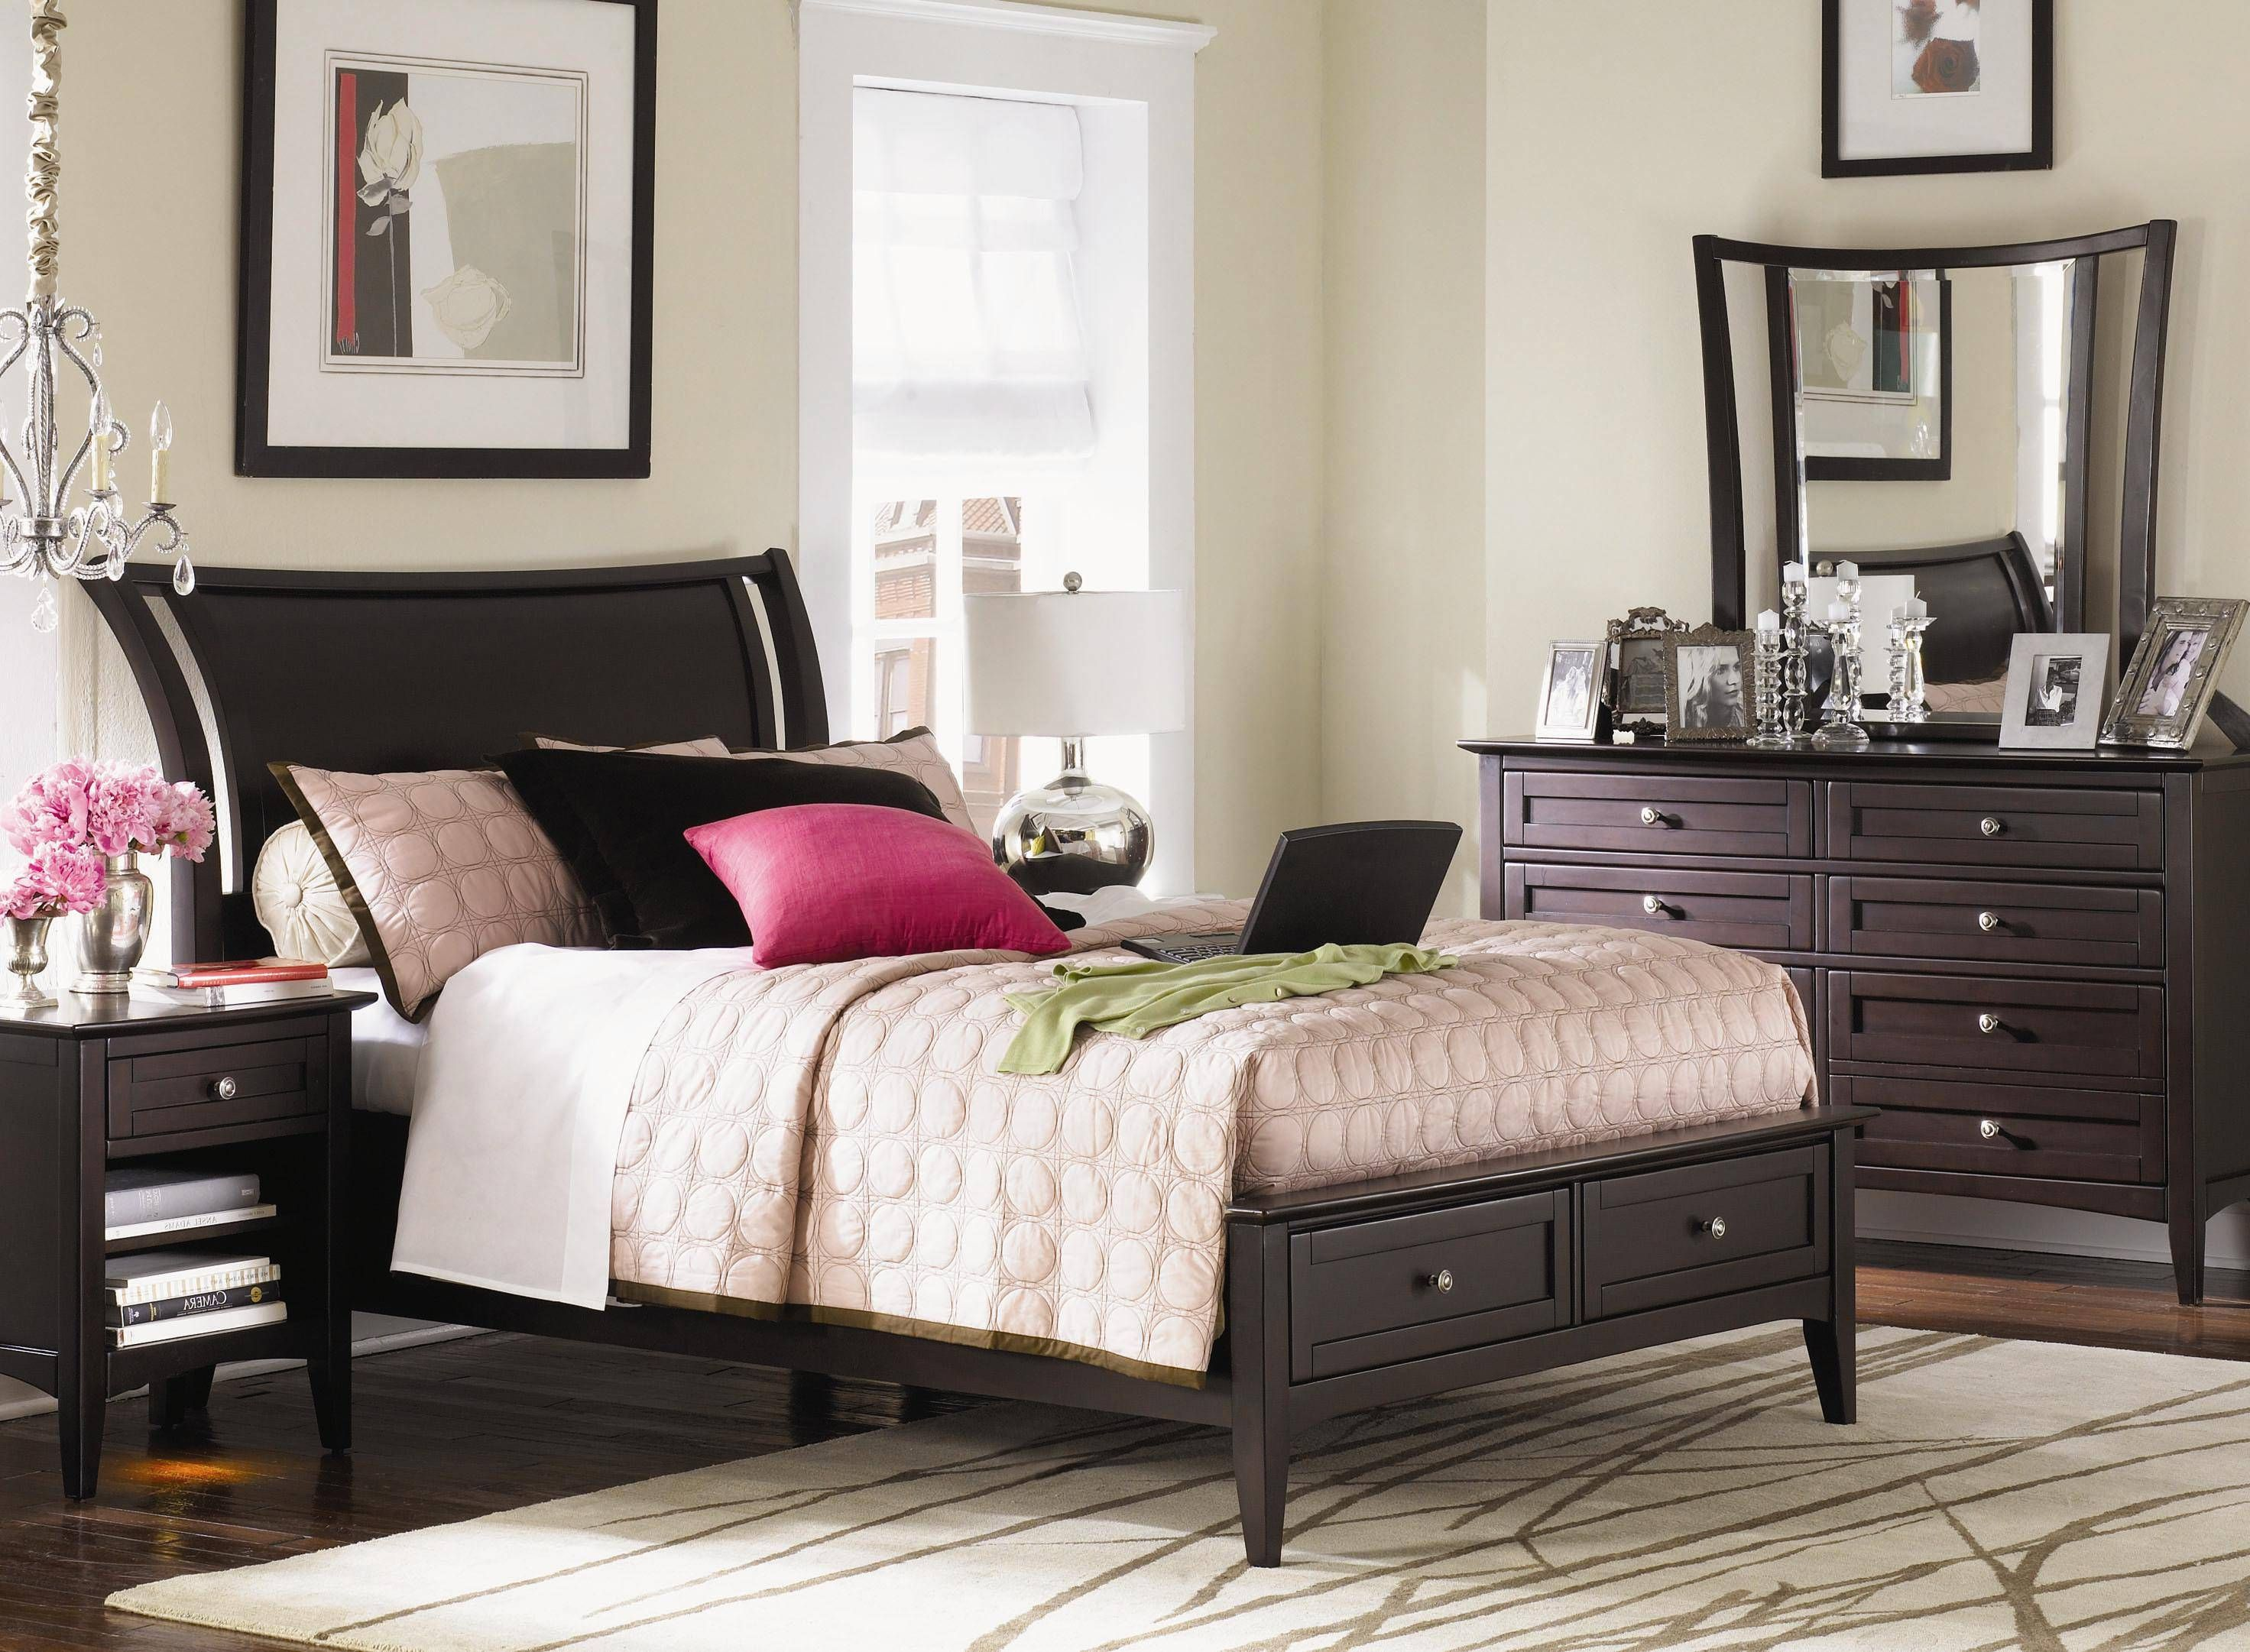 Kensington Sleigh W Storage King Bedroom Group Gp B355 Guest Room Furniture Furniture Living